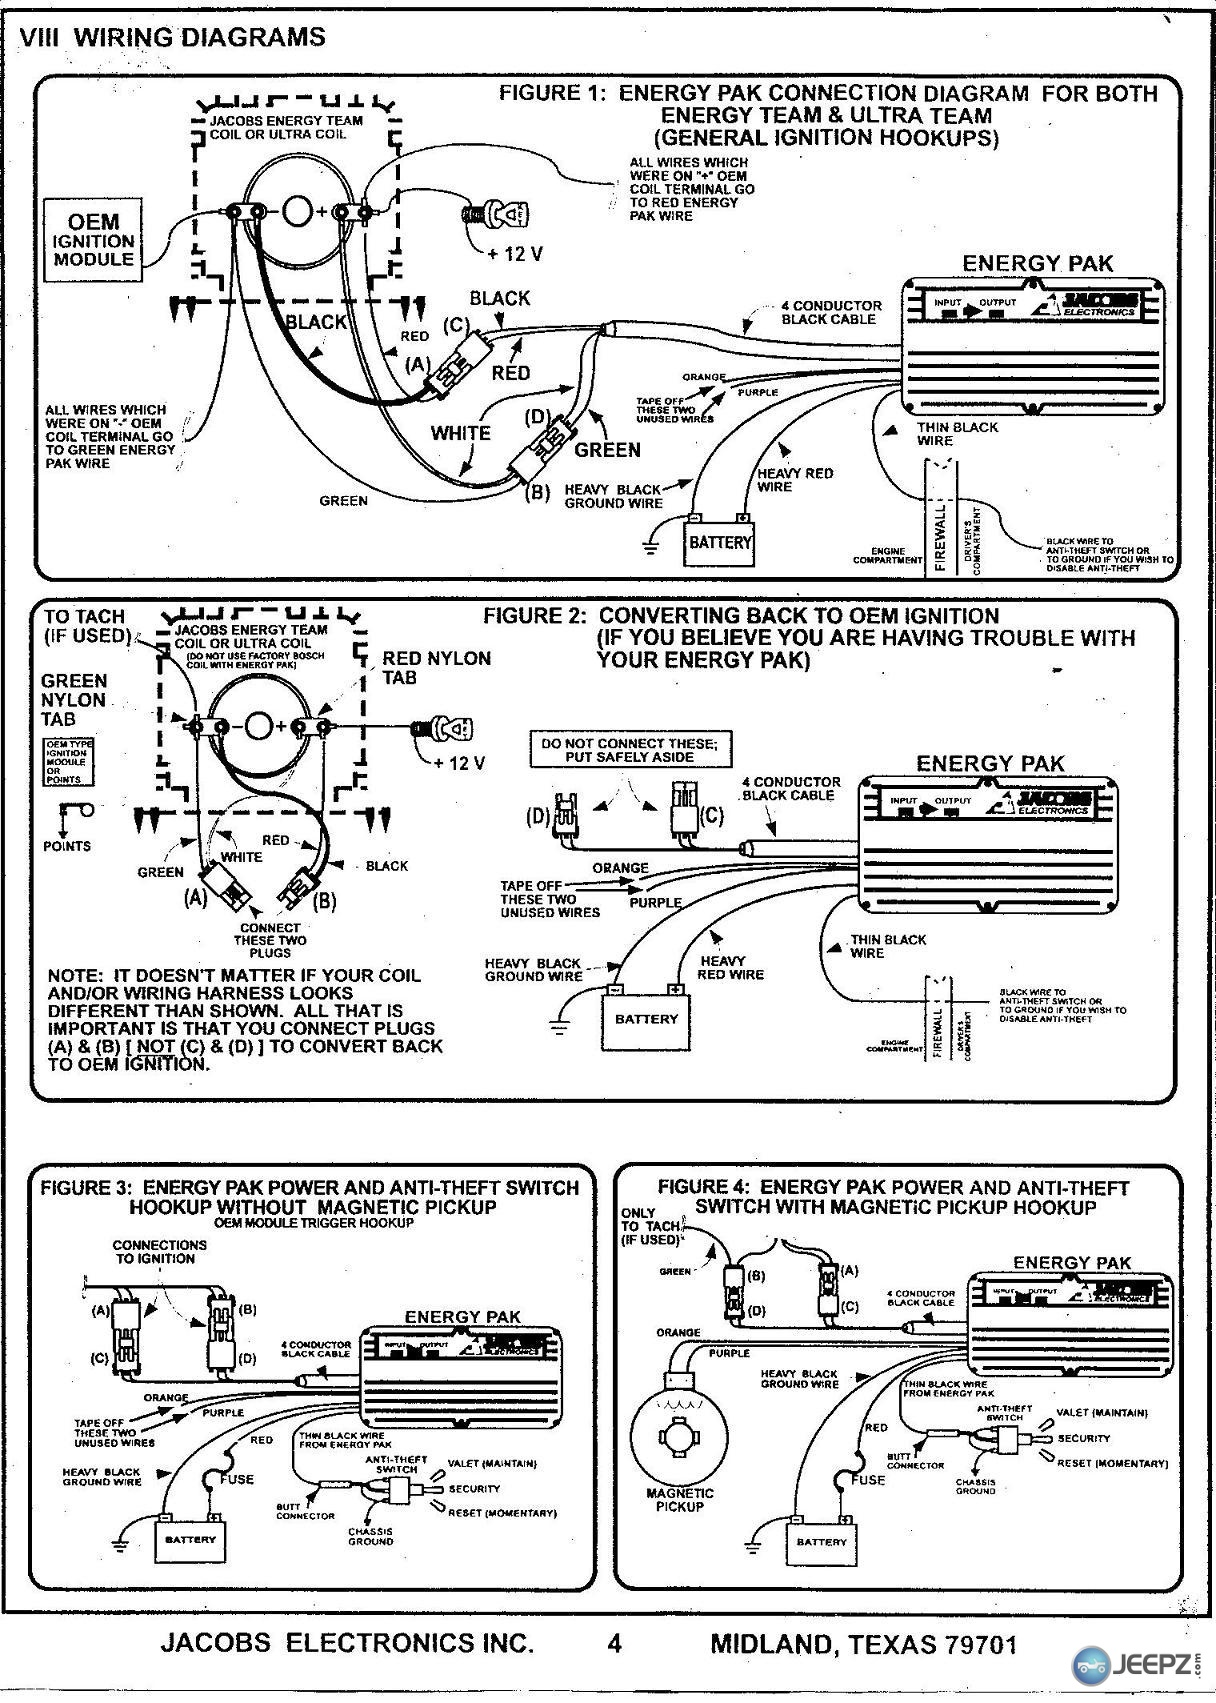 electronic ignition system wiring diagram thermo king v250 jacobs